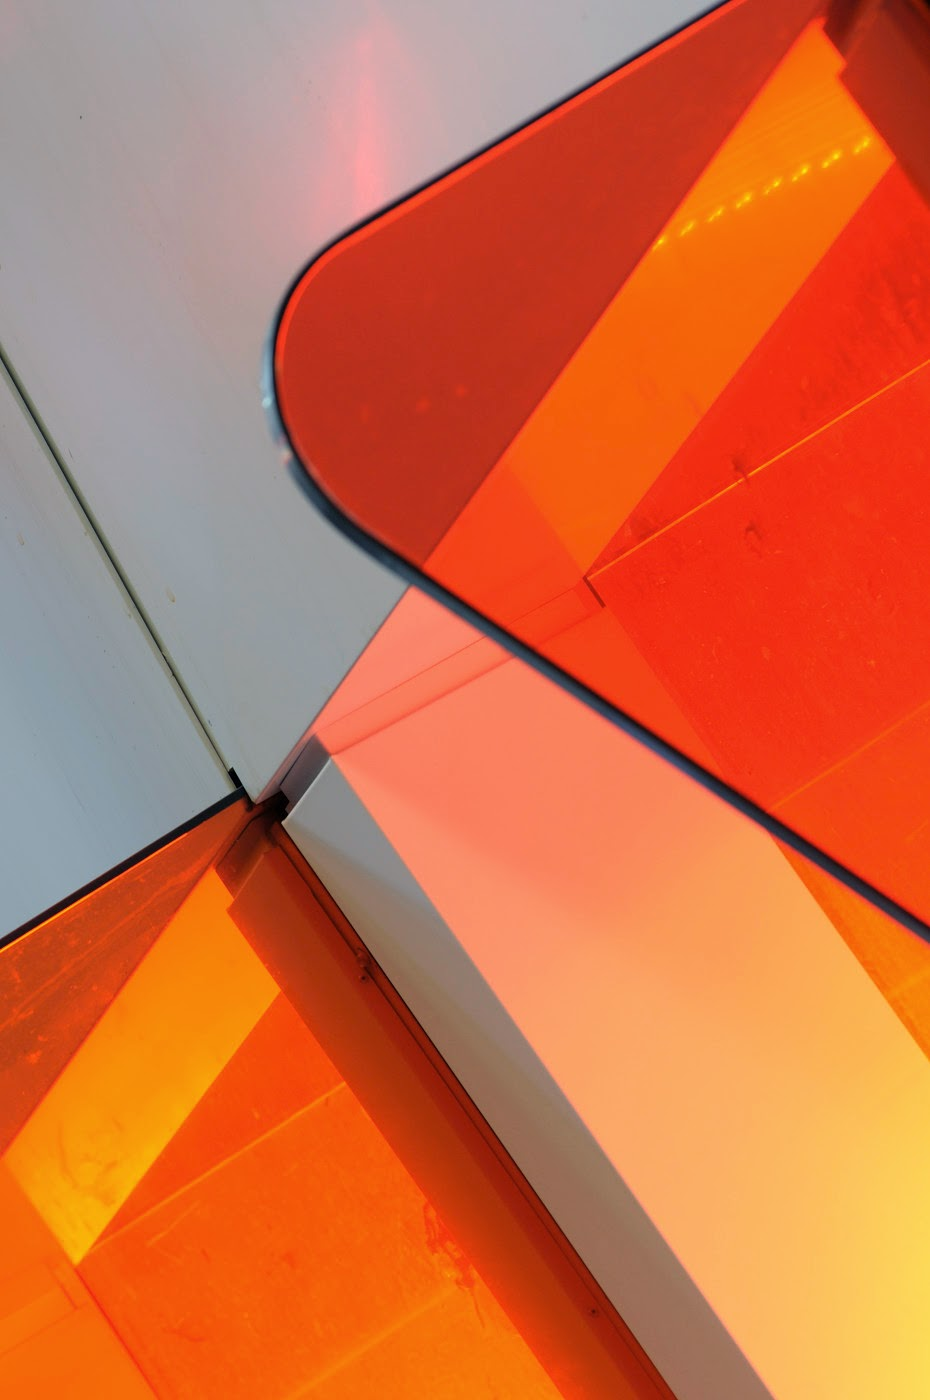 abstract, abstraction, abstractional, graphic, façade, tim Macauley, Macauley, studio 505, architects, architectural, postmodern, postmodernist, modern, new, Lonsdale st, Melbourne, Australia, glass, fins, detail, Elizabeth st,  the strand, arcade